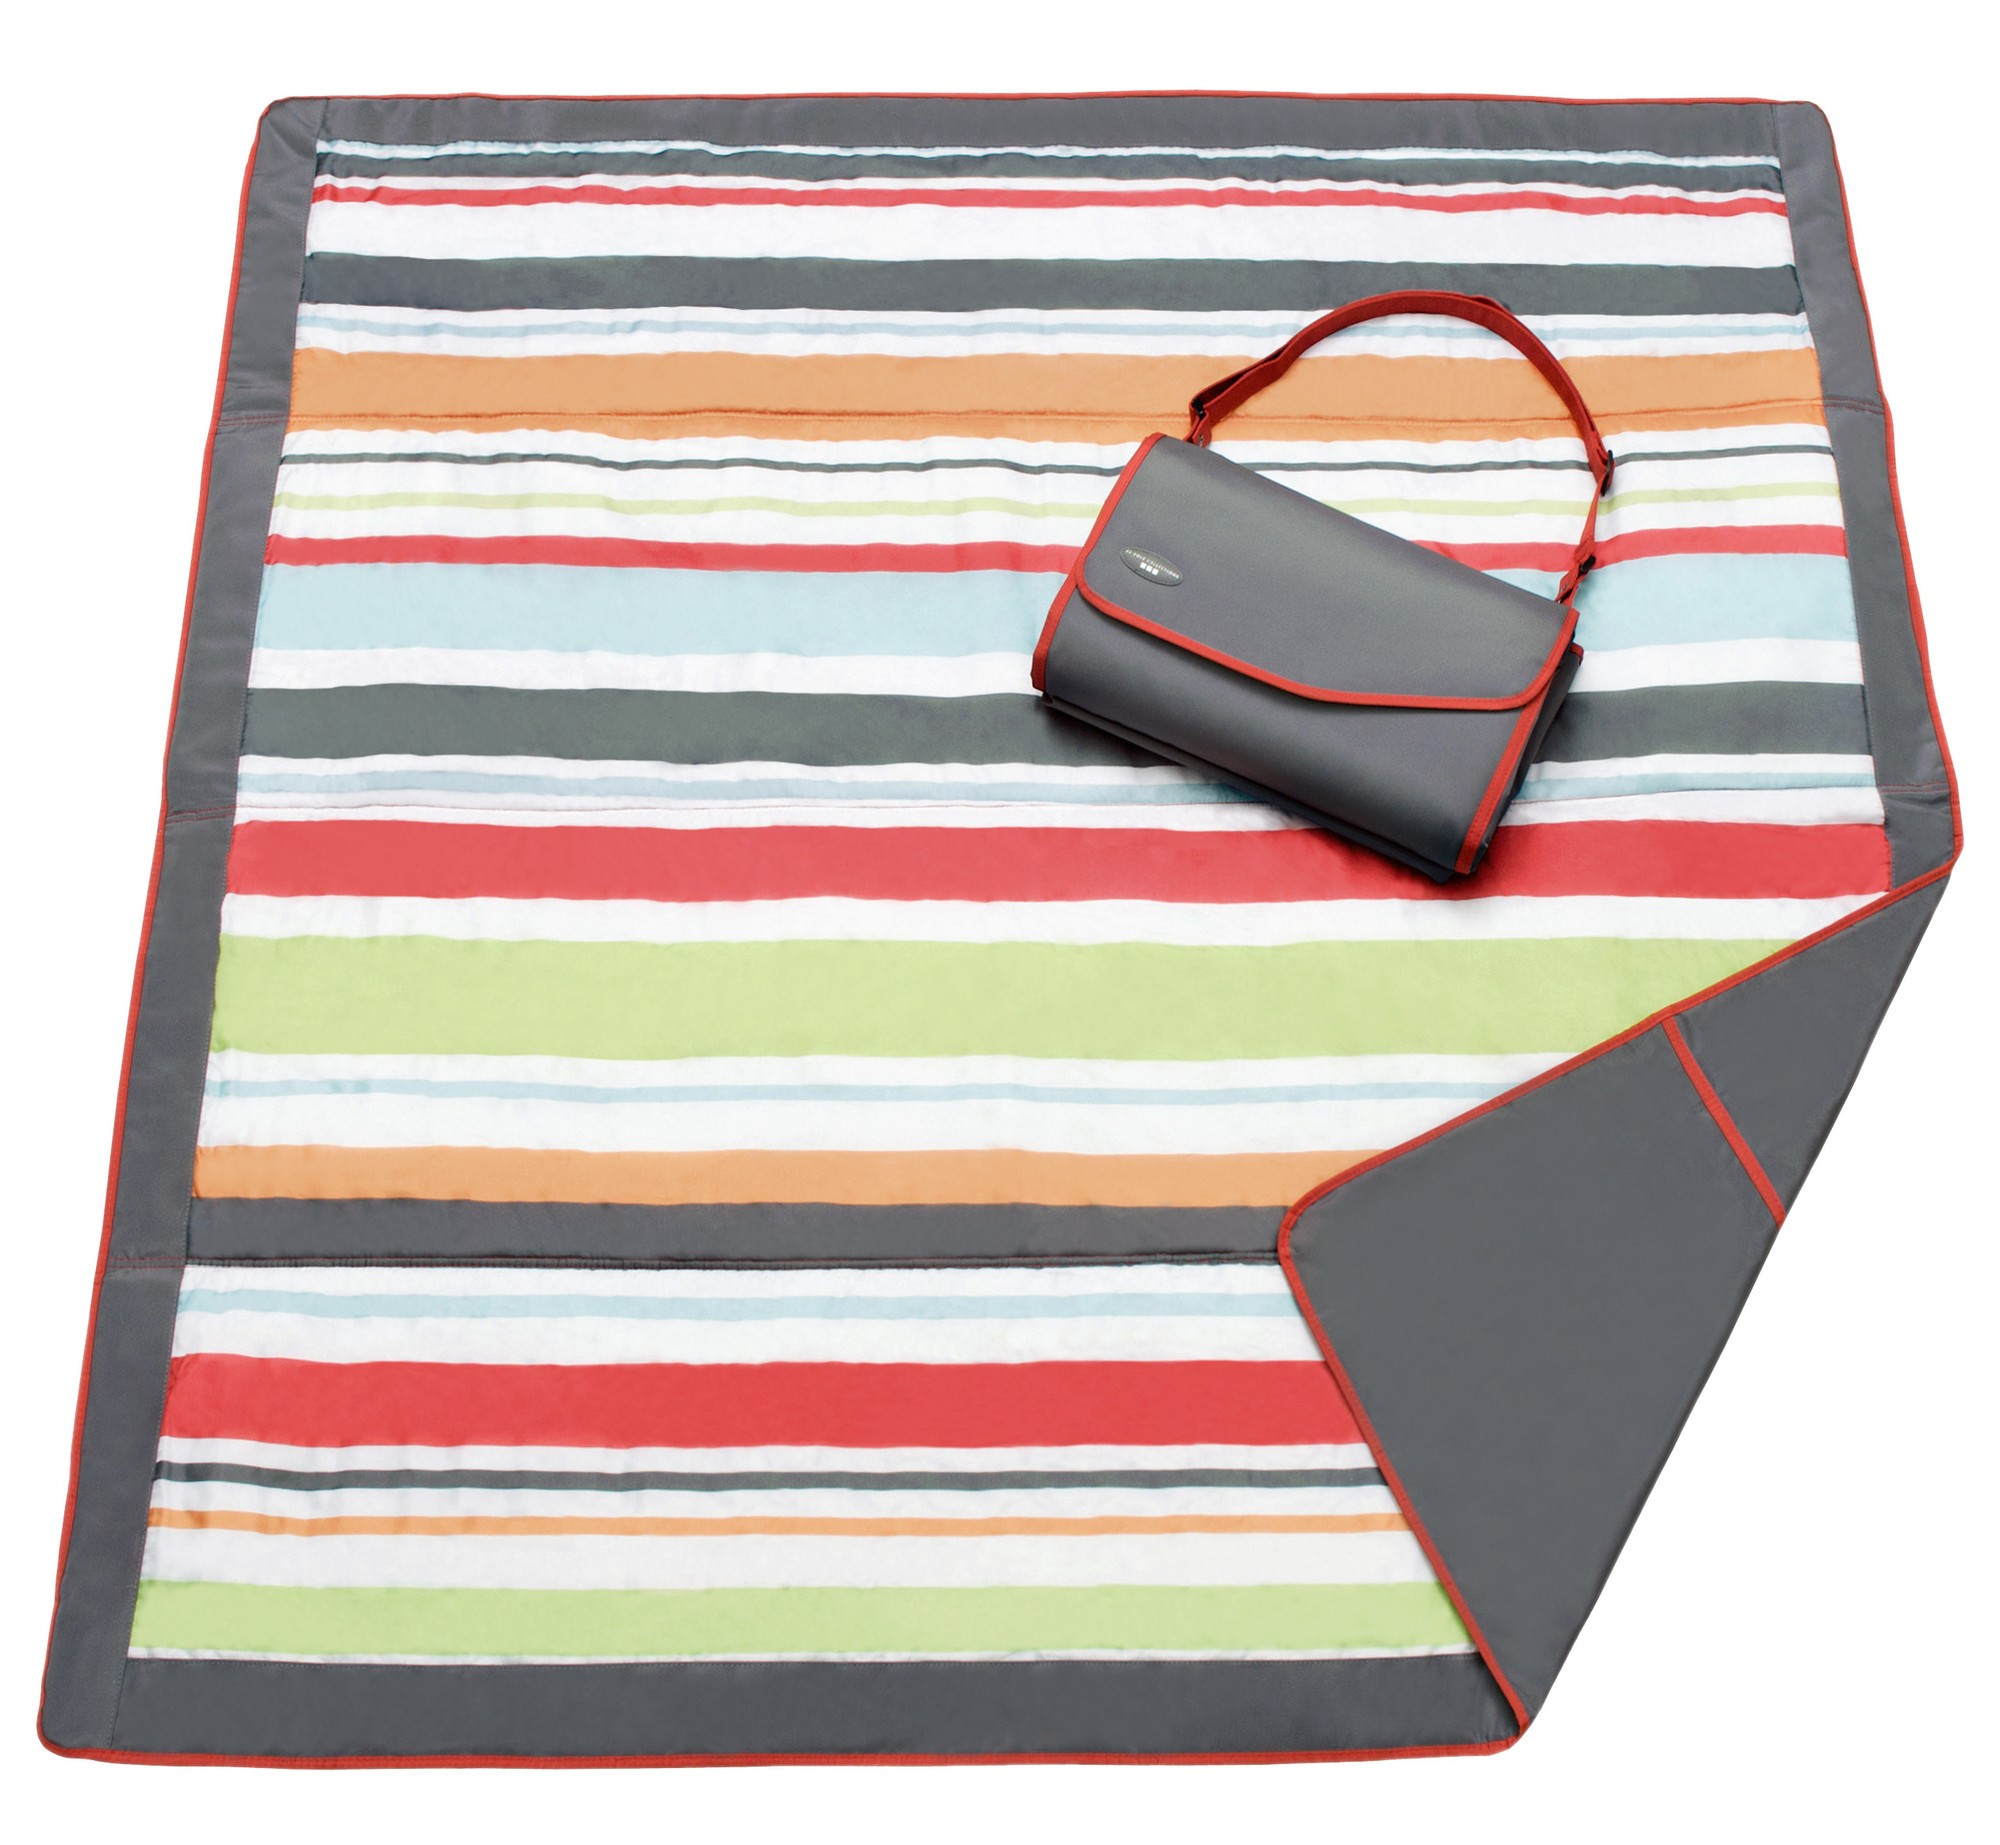 JJ COLE Outdoor Mat 5 X 7 - Gray Red